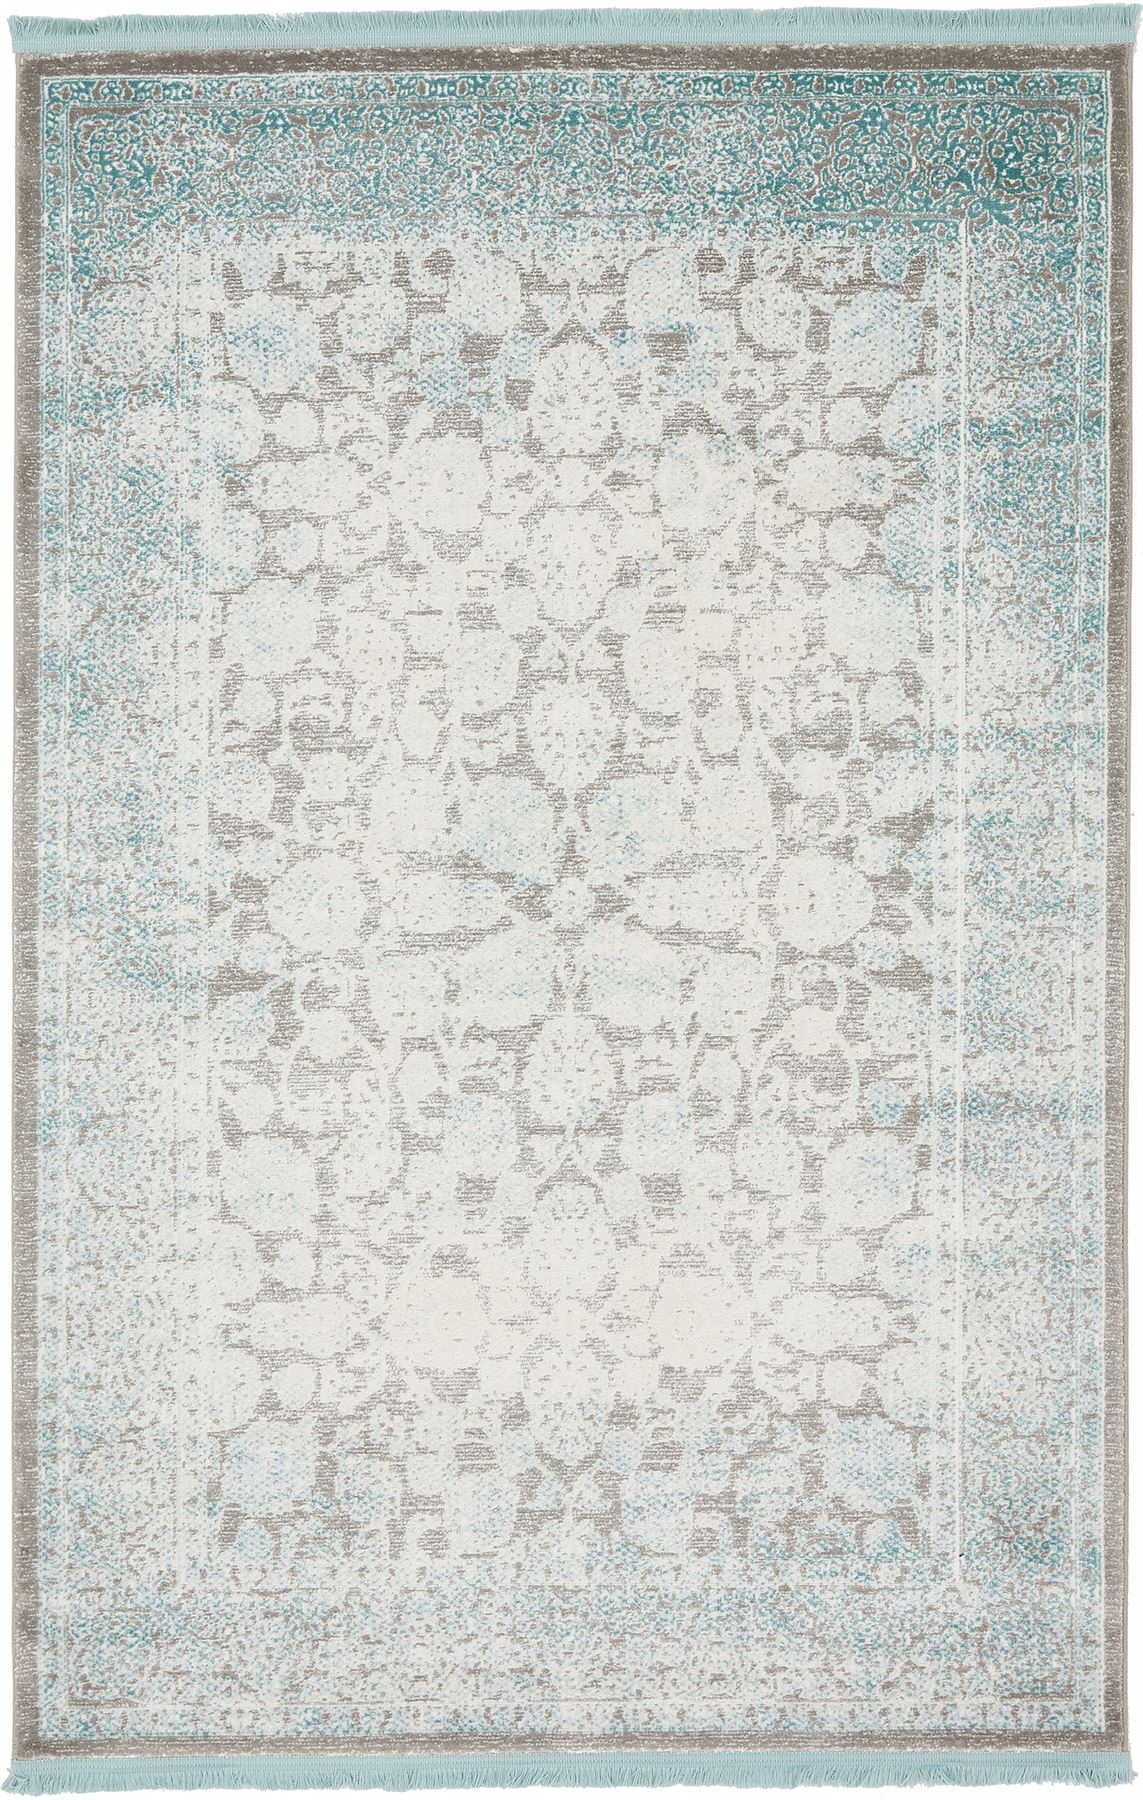 Modern Rugs Floor Area Rugs Contemporary Carpet 100